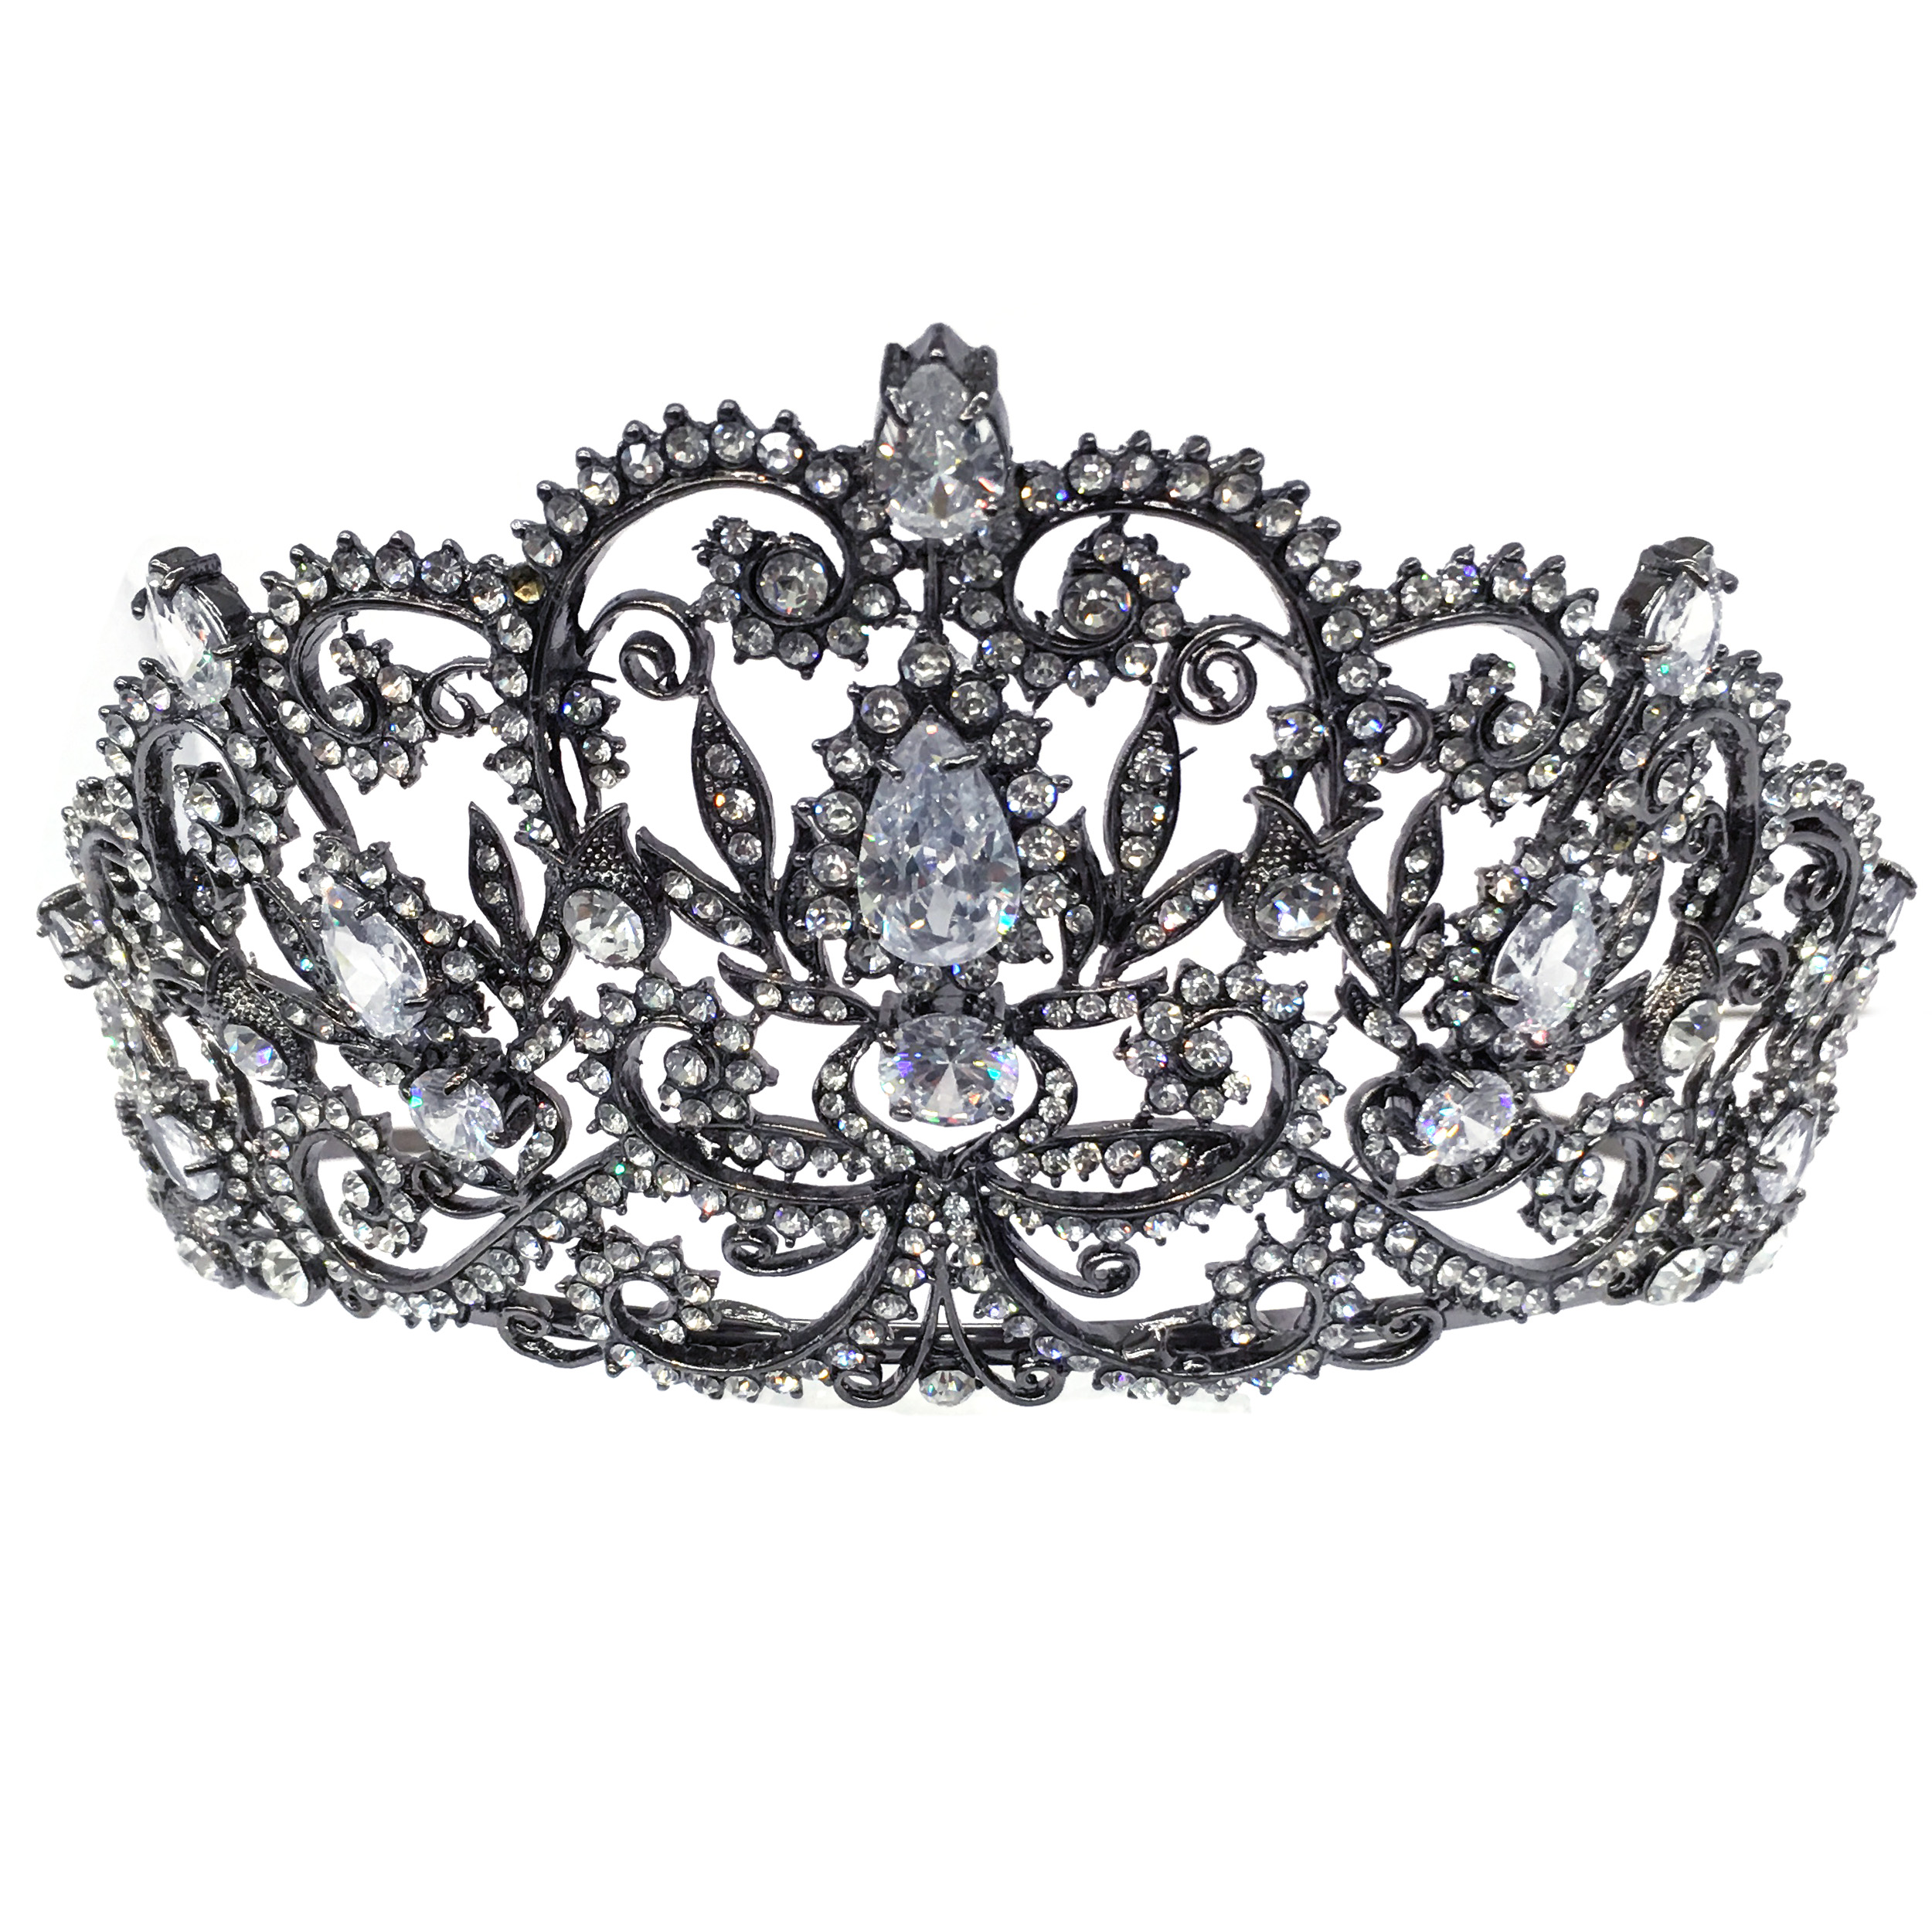 Kate Marie CWN-DH5913 Rhinestone Crown Tiara Headband in Black